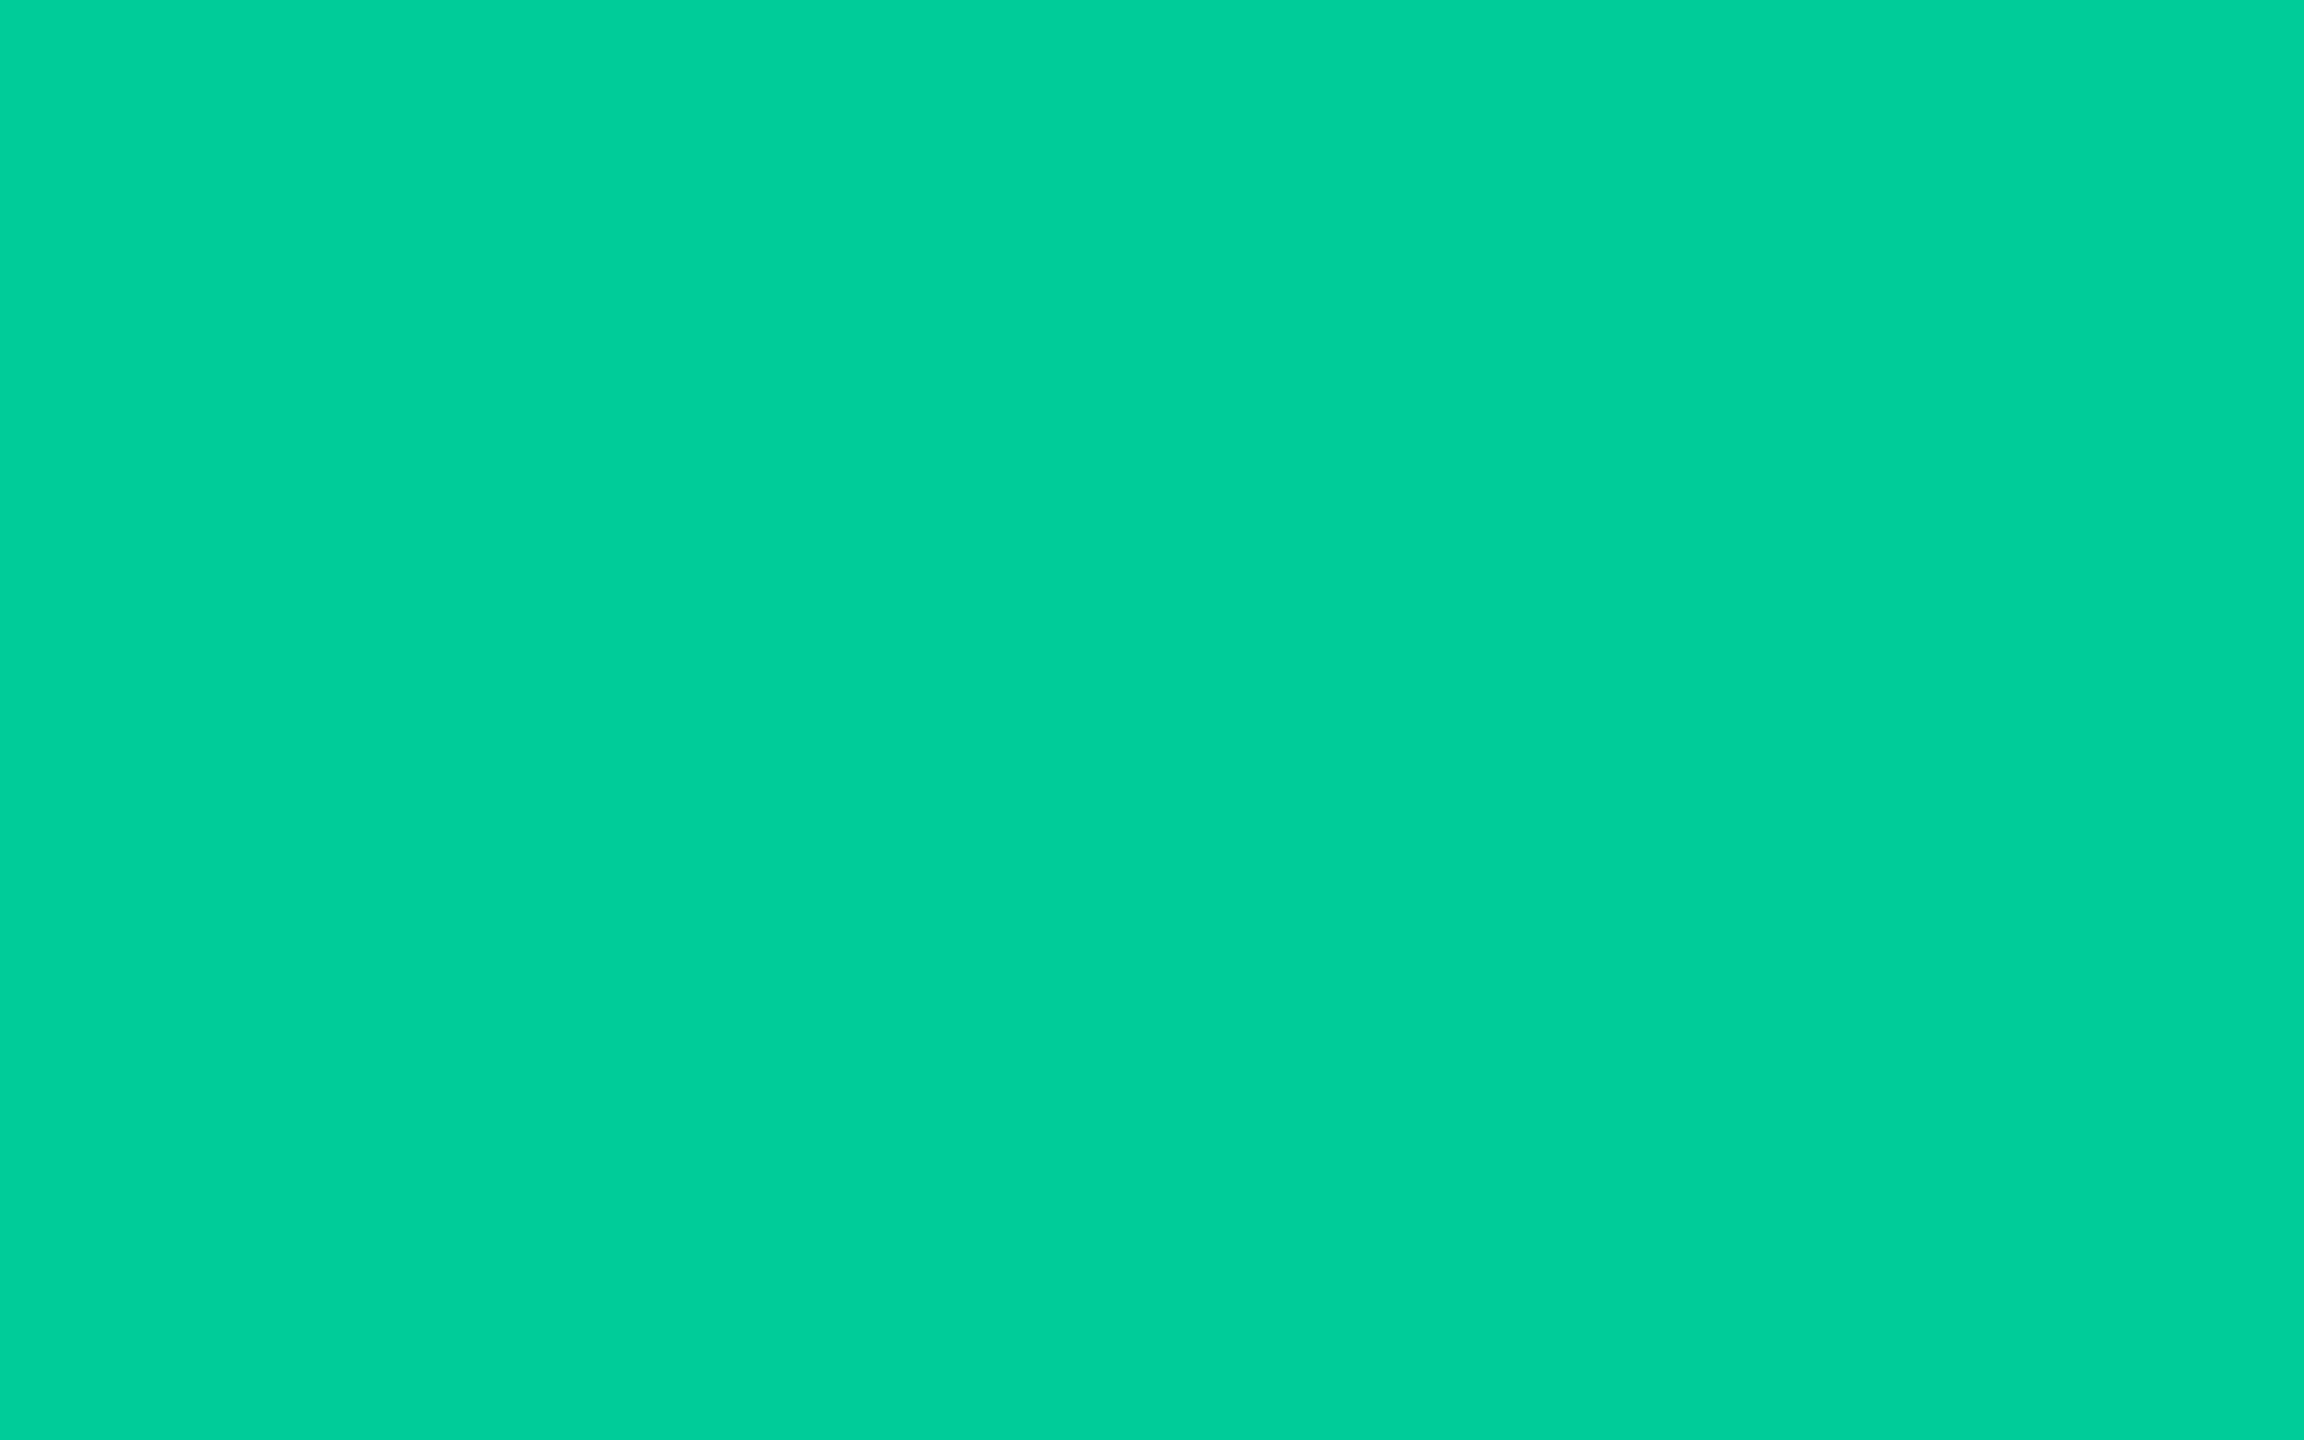 2304x1440 Caribbean Green Solid Color Background